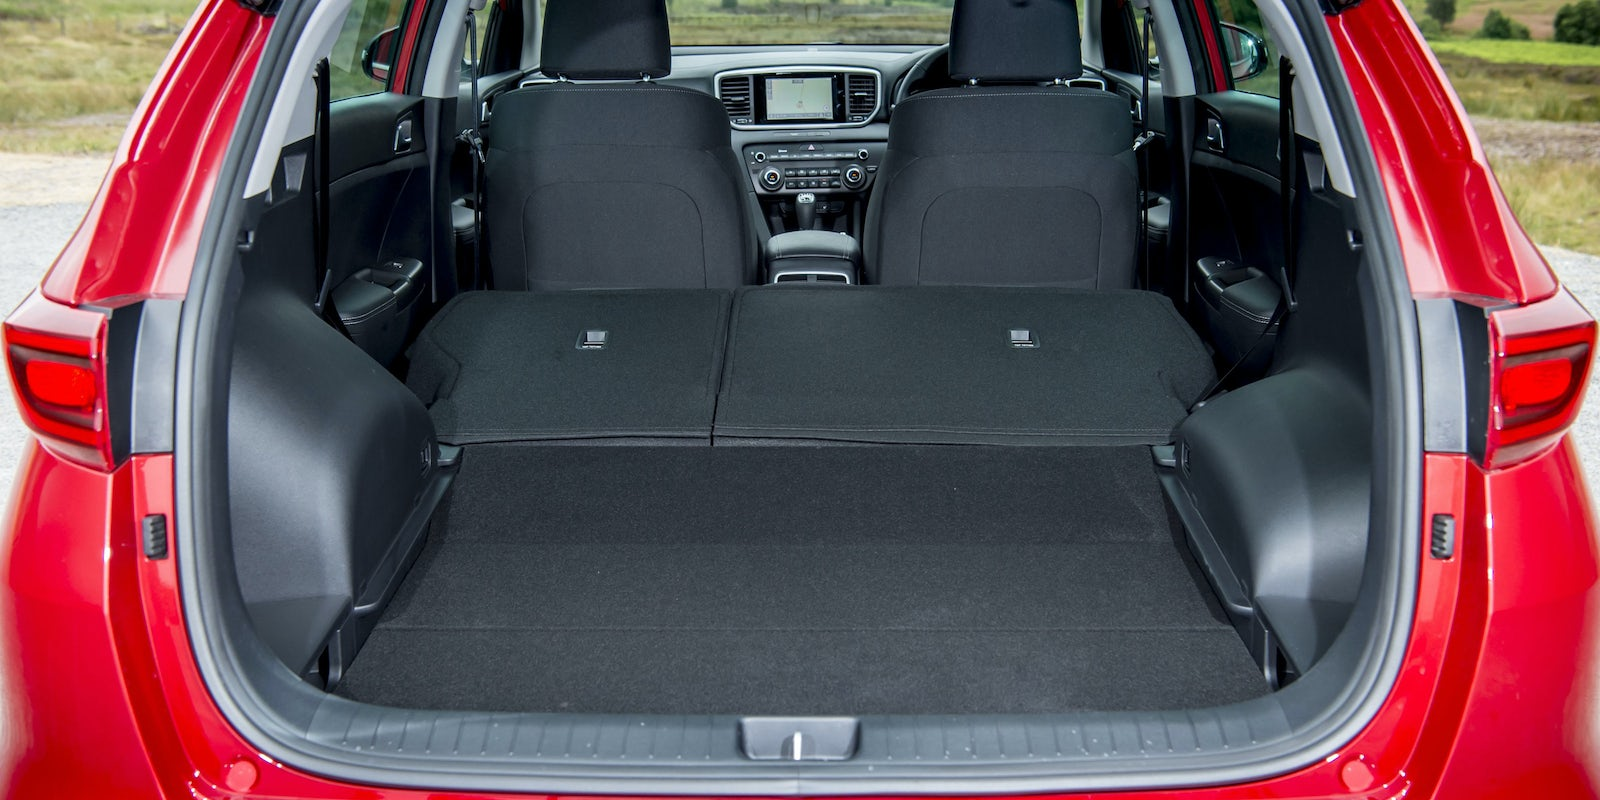 Kia Sportage Boot Space Amp Dimensions Carwow